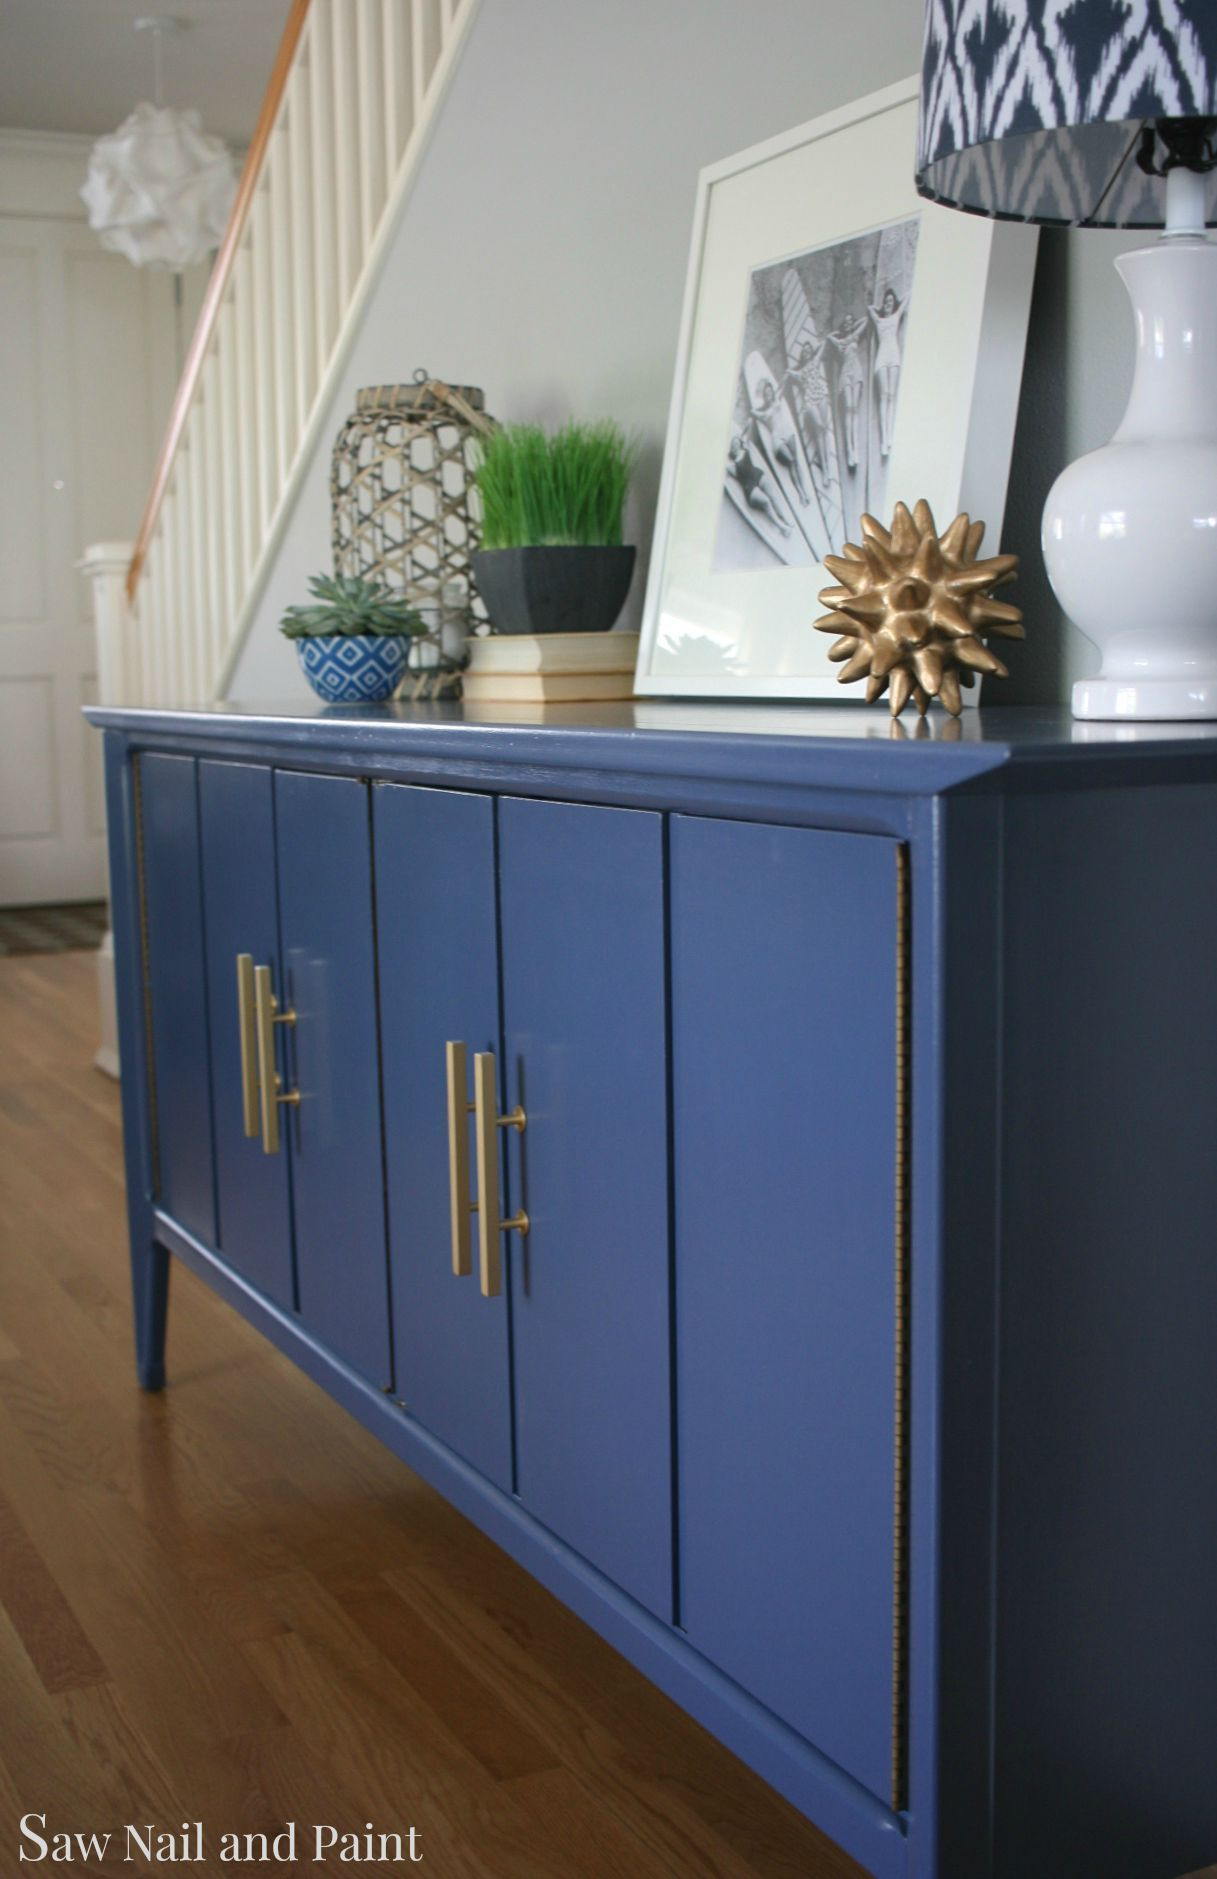 painting designs on furniture. Havens South Designs :: Craigslist 60\u0027s Buffet Painted In Ben Moore Advance Paint Semigloss Indigo Blue. New Brushed Brass Handles. Painting On Furniture